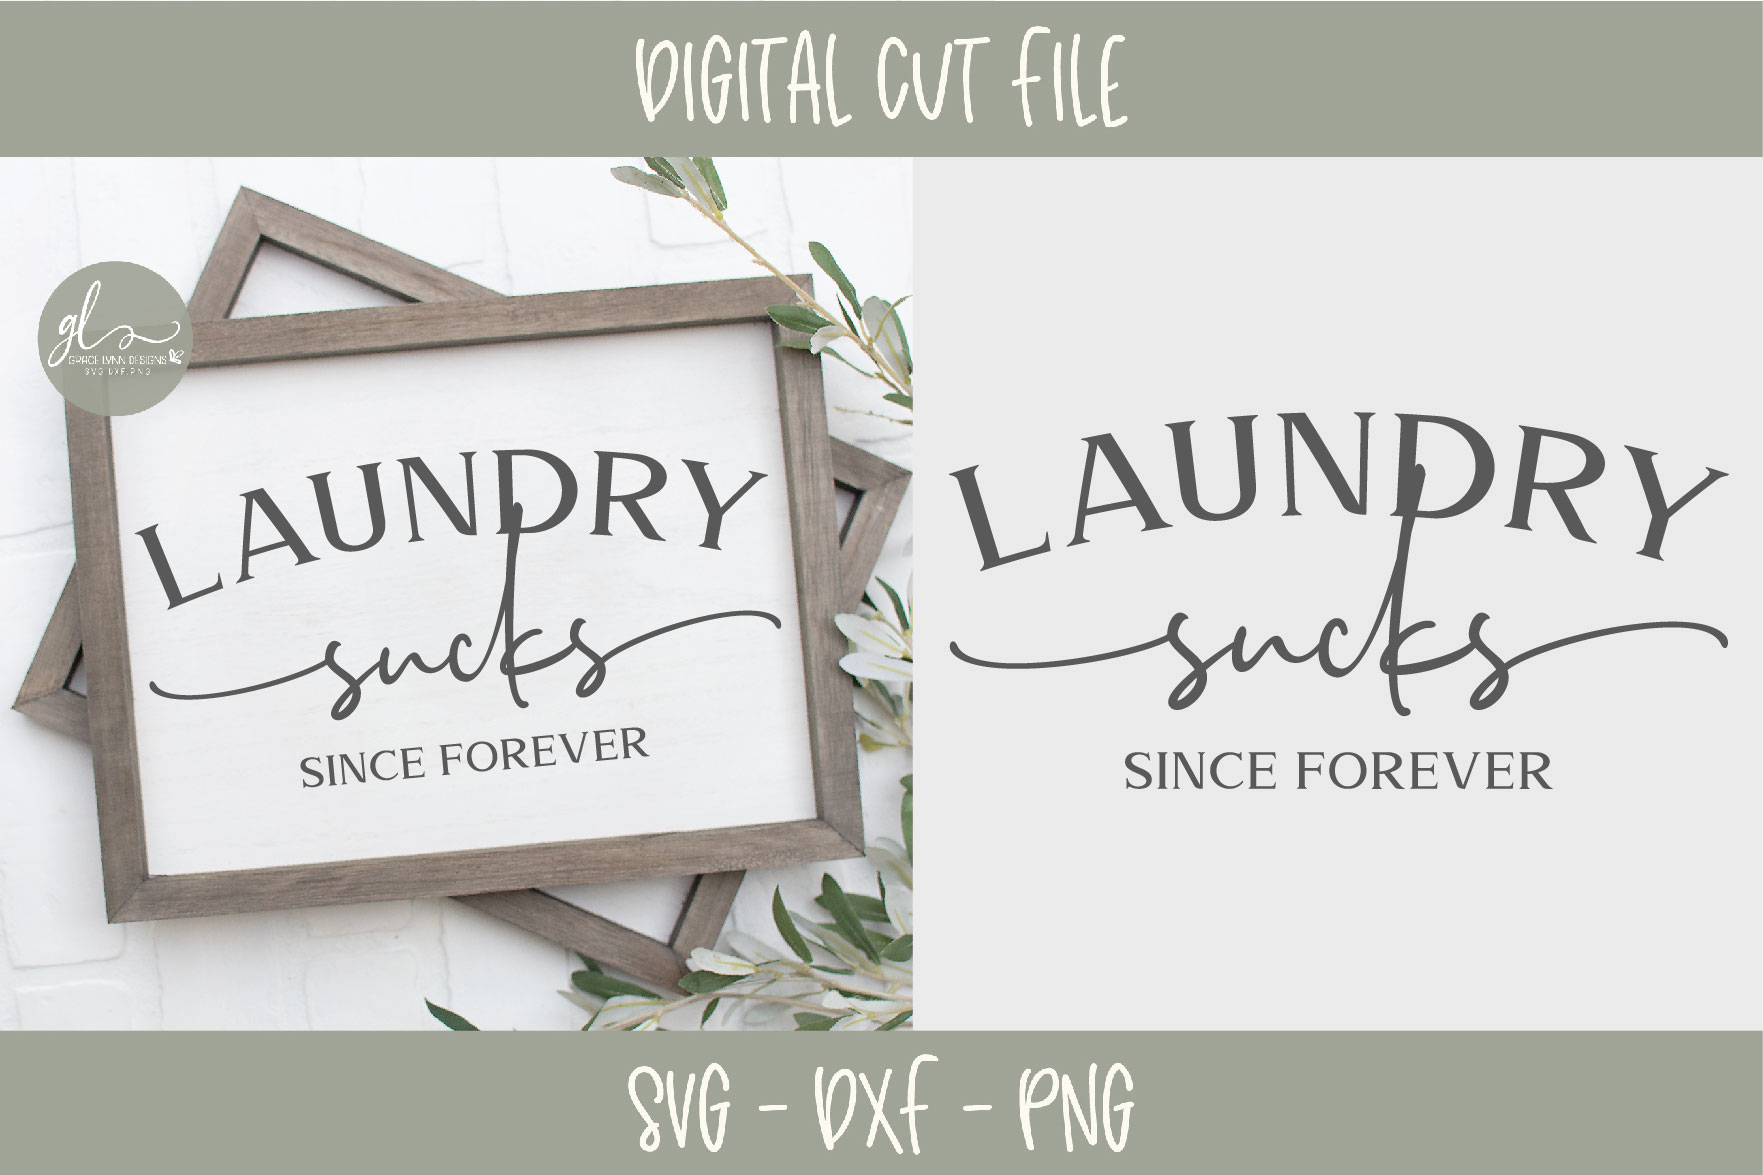 Laundry Sucks Since Forever - Laundry SVG Cut File example image 1